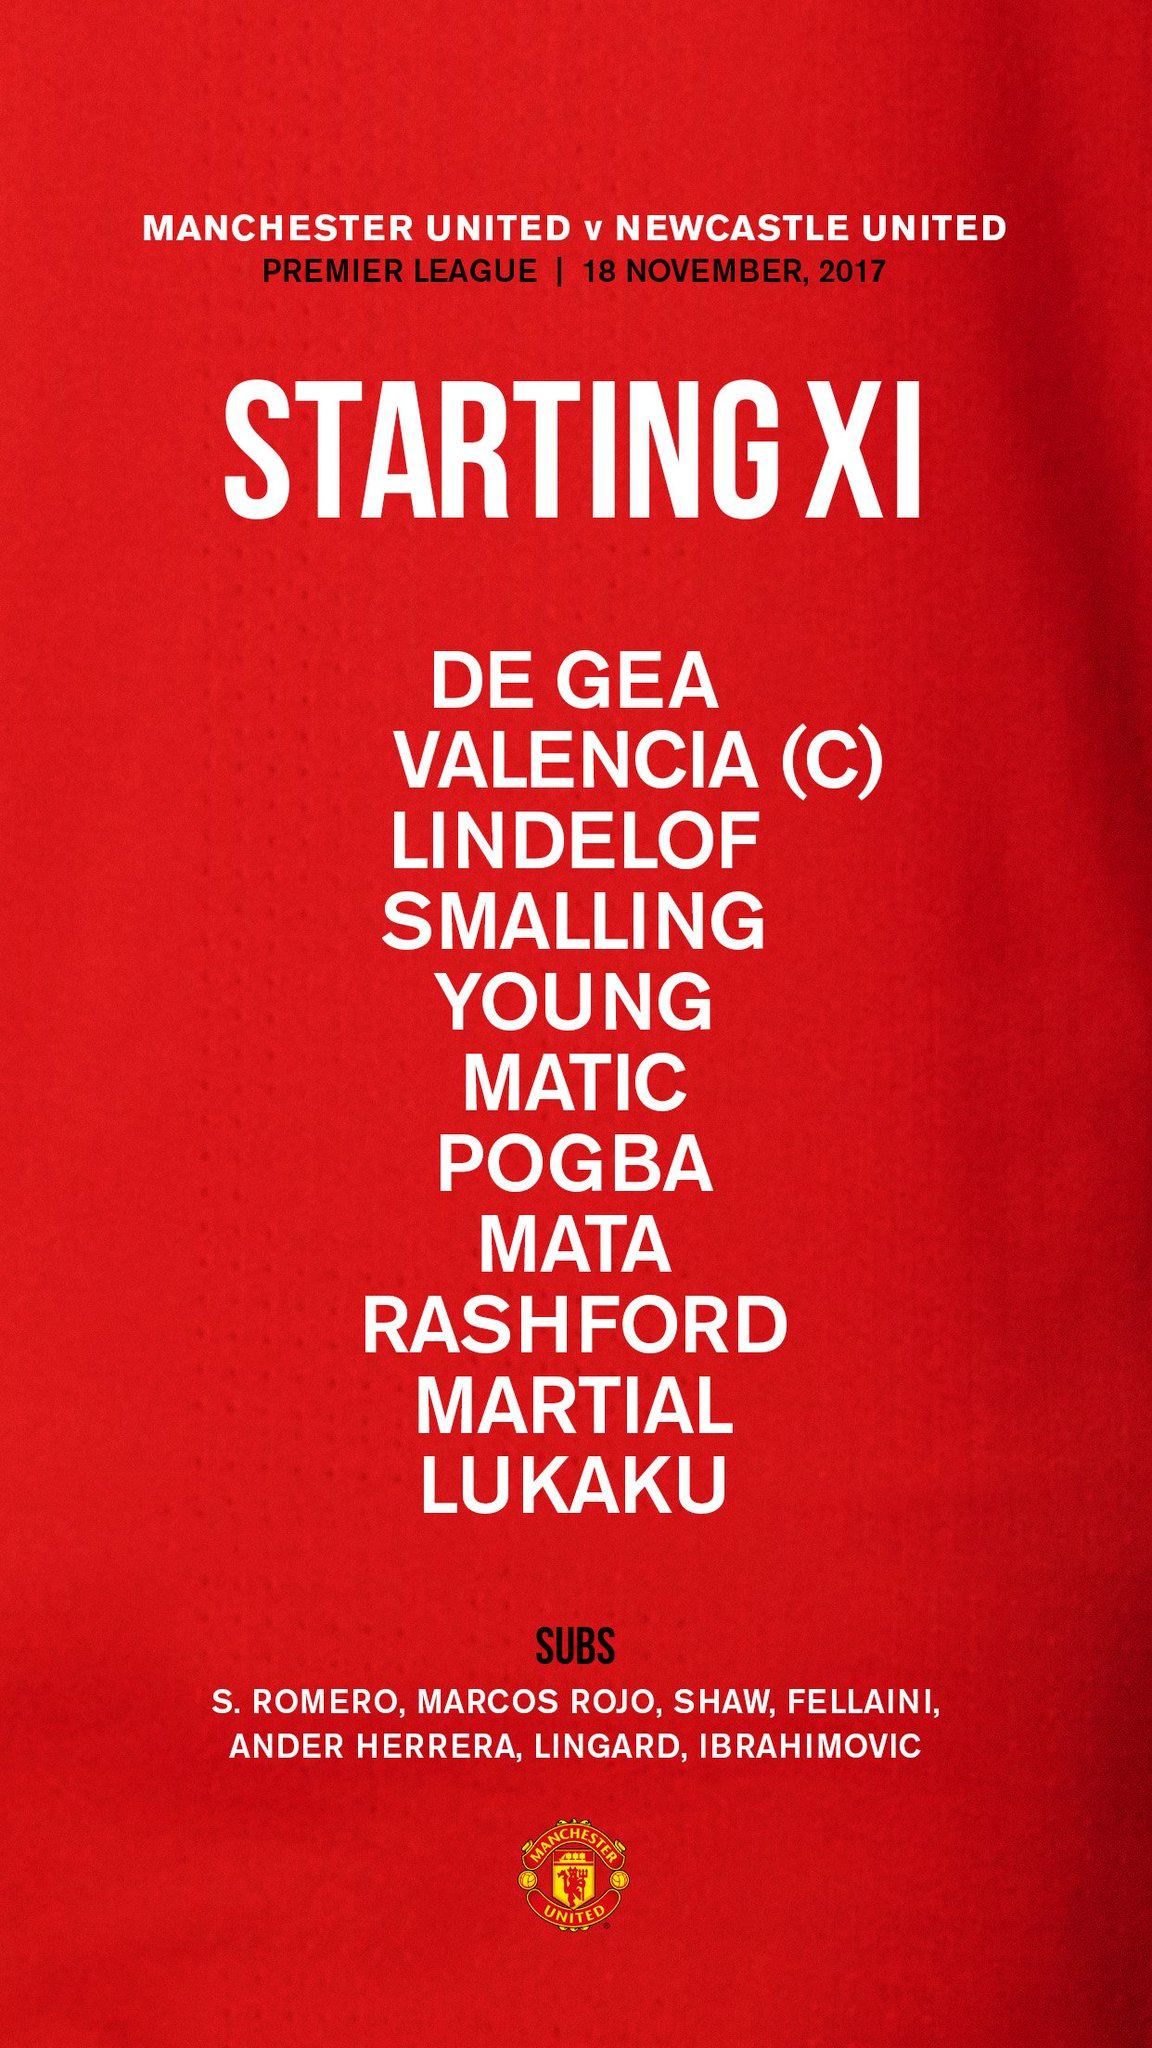 Today's #MUFC starting XI is in... �� https://t.co/vmDa4Aw58R